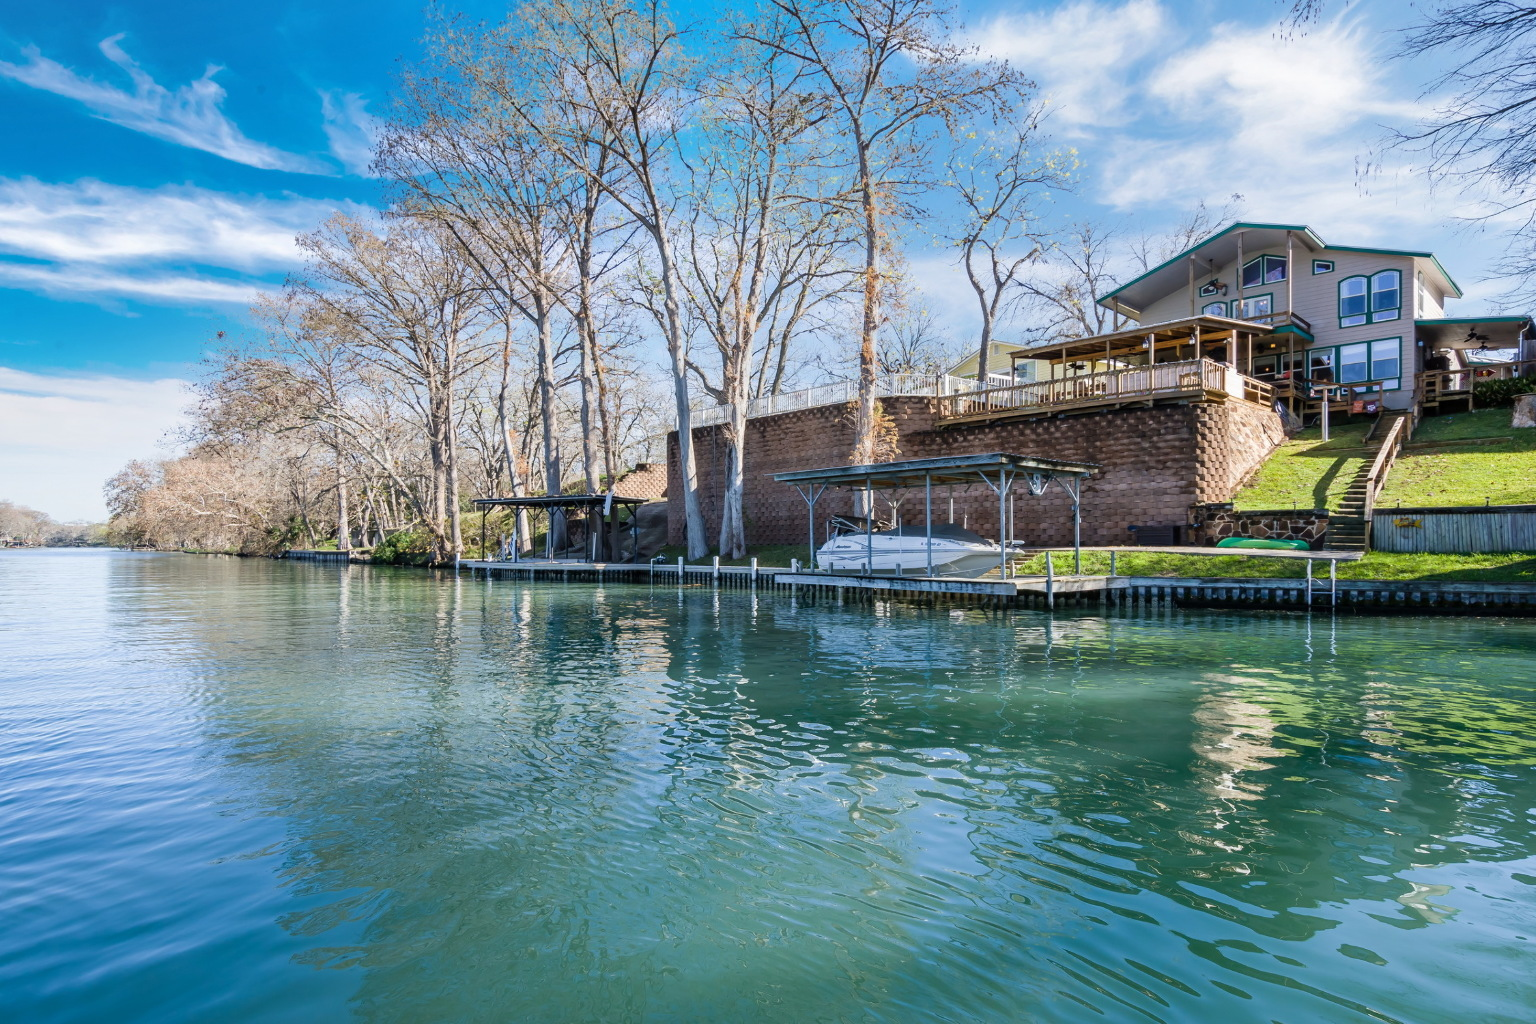 Lake Dunlap Waterfront Home For Sale